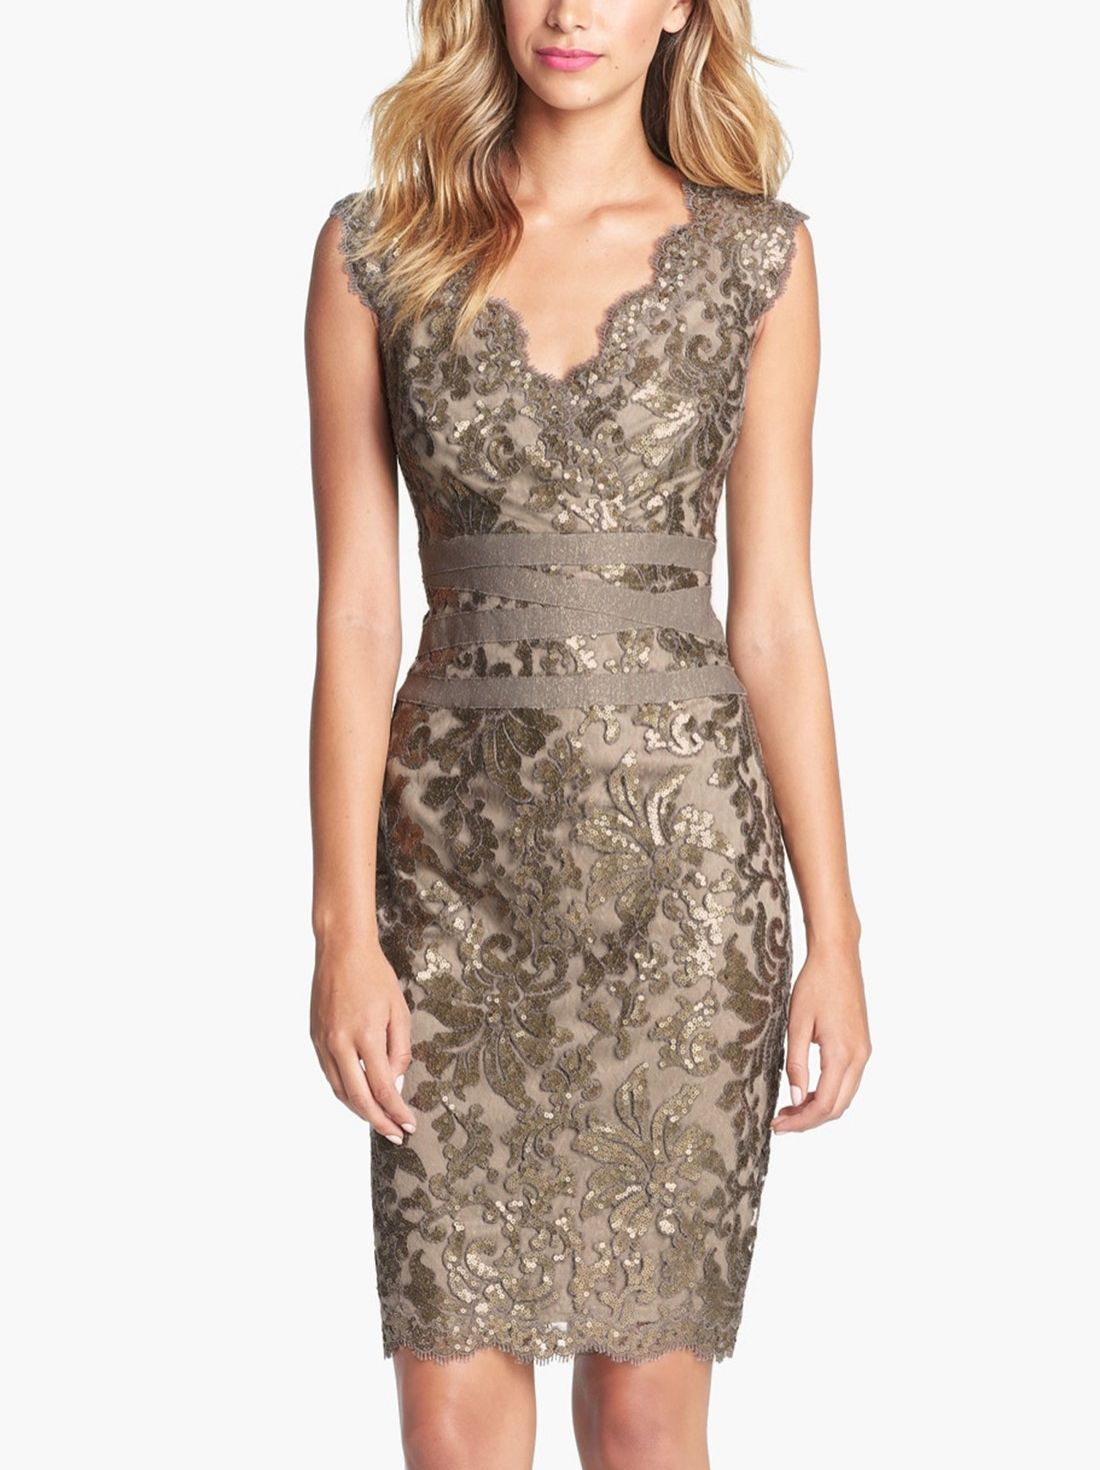 This Lace Sheath Dress Is So Elegant Posh Frocksputting On The